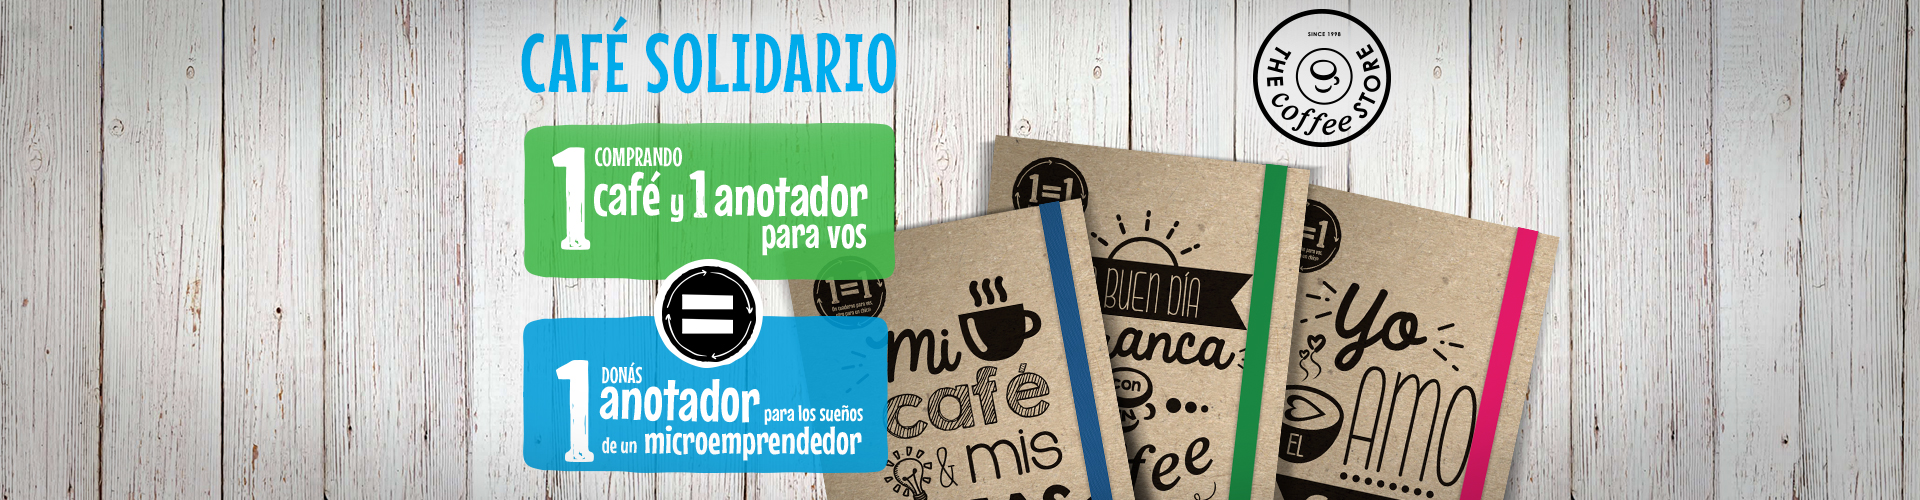 Encontrá tu café solidario en los Coffee Store de Bs. As.